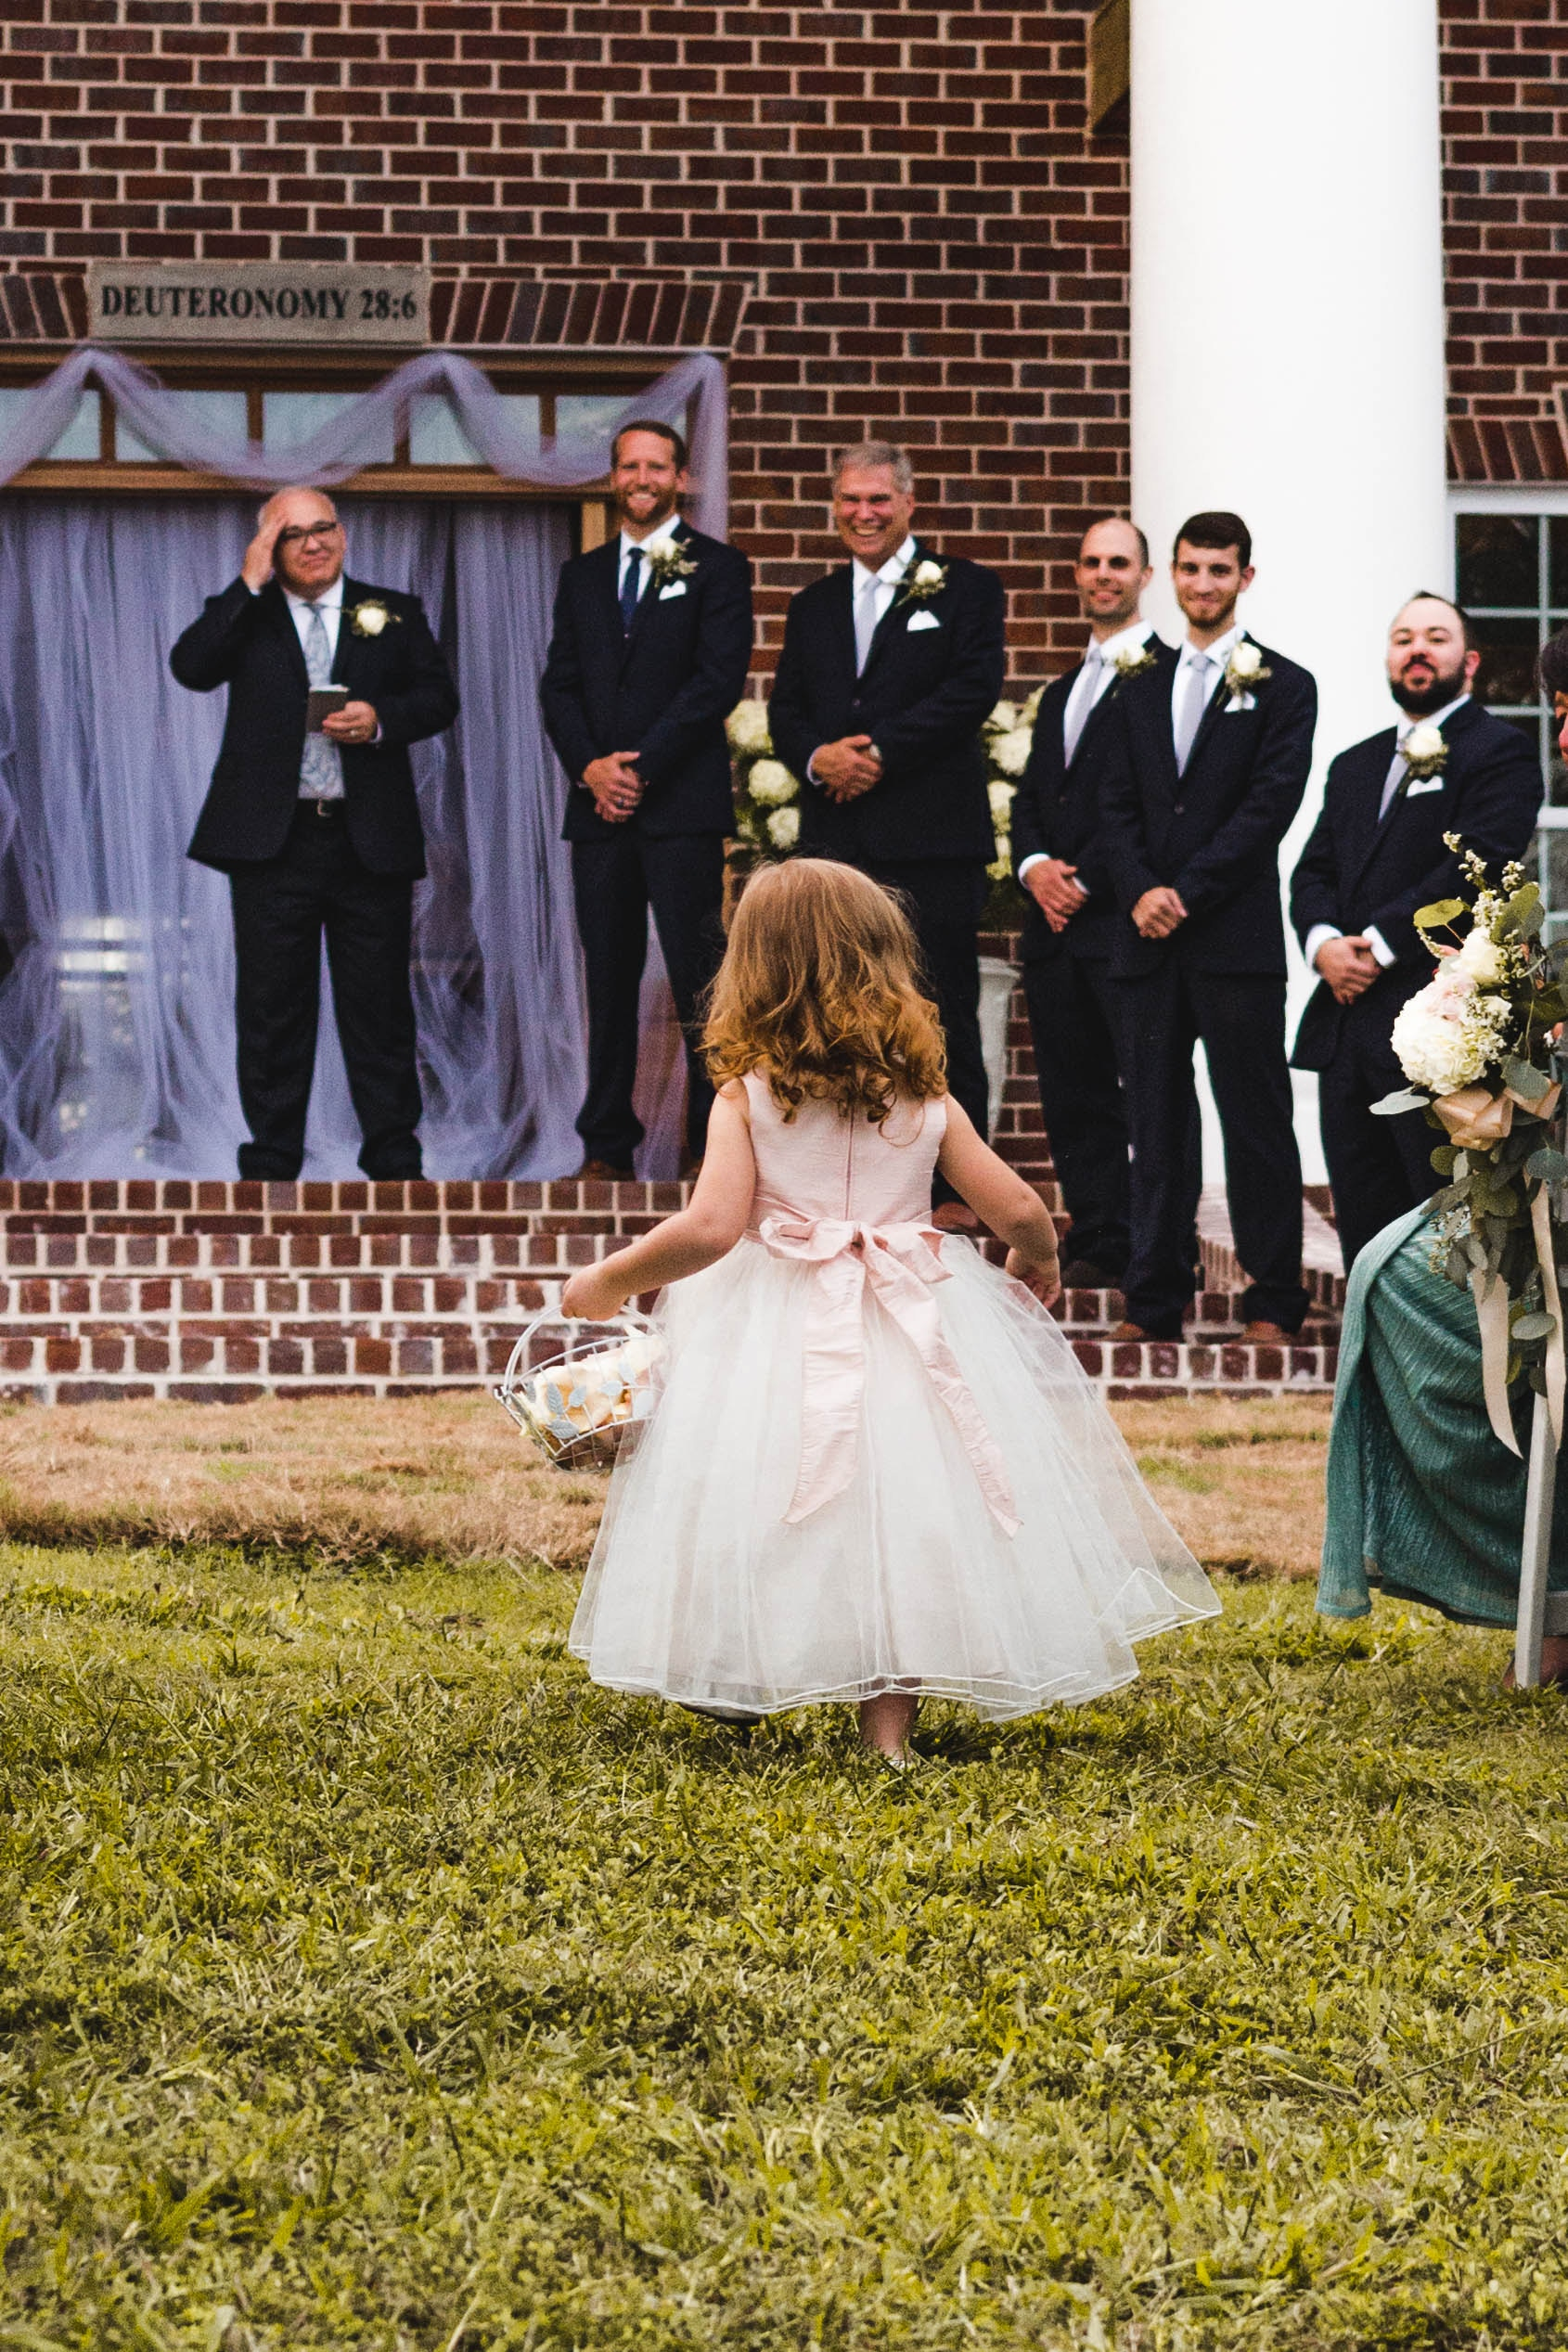 Little flower girl walking down the aisle to the smiles of the groomsman.